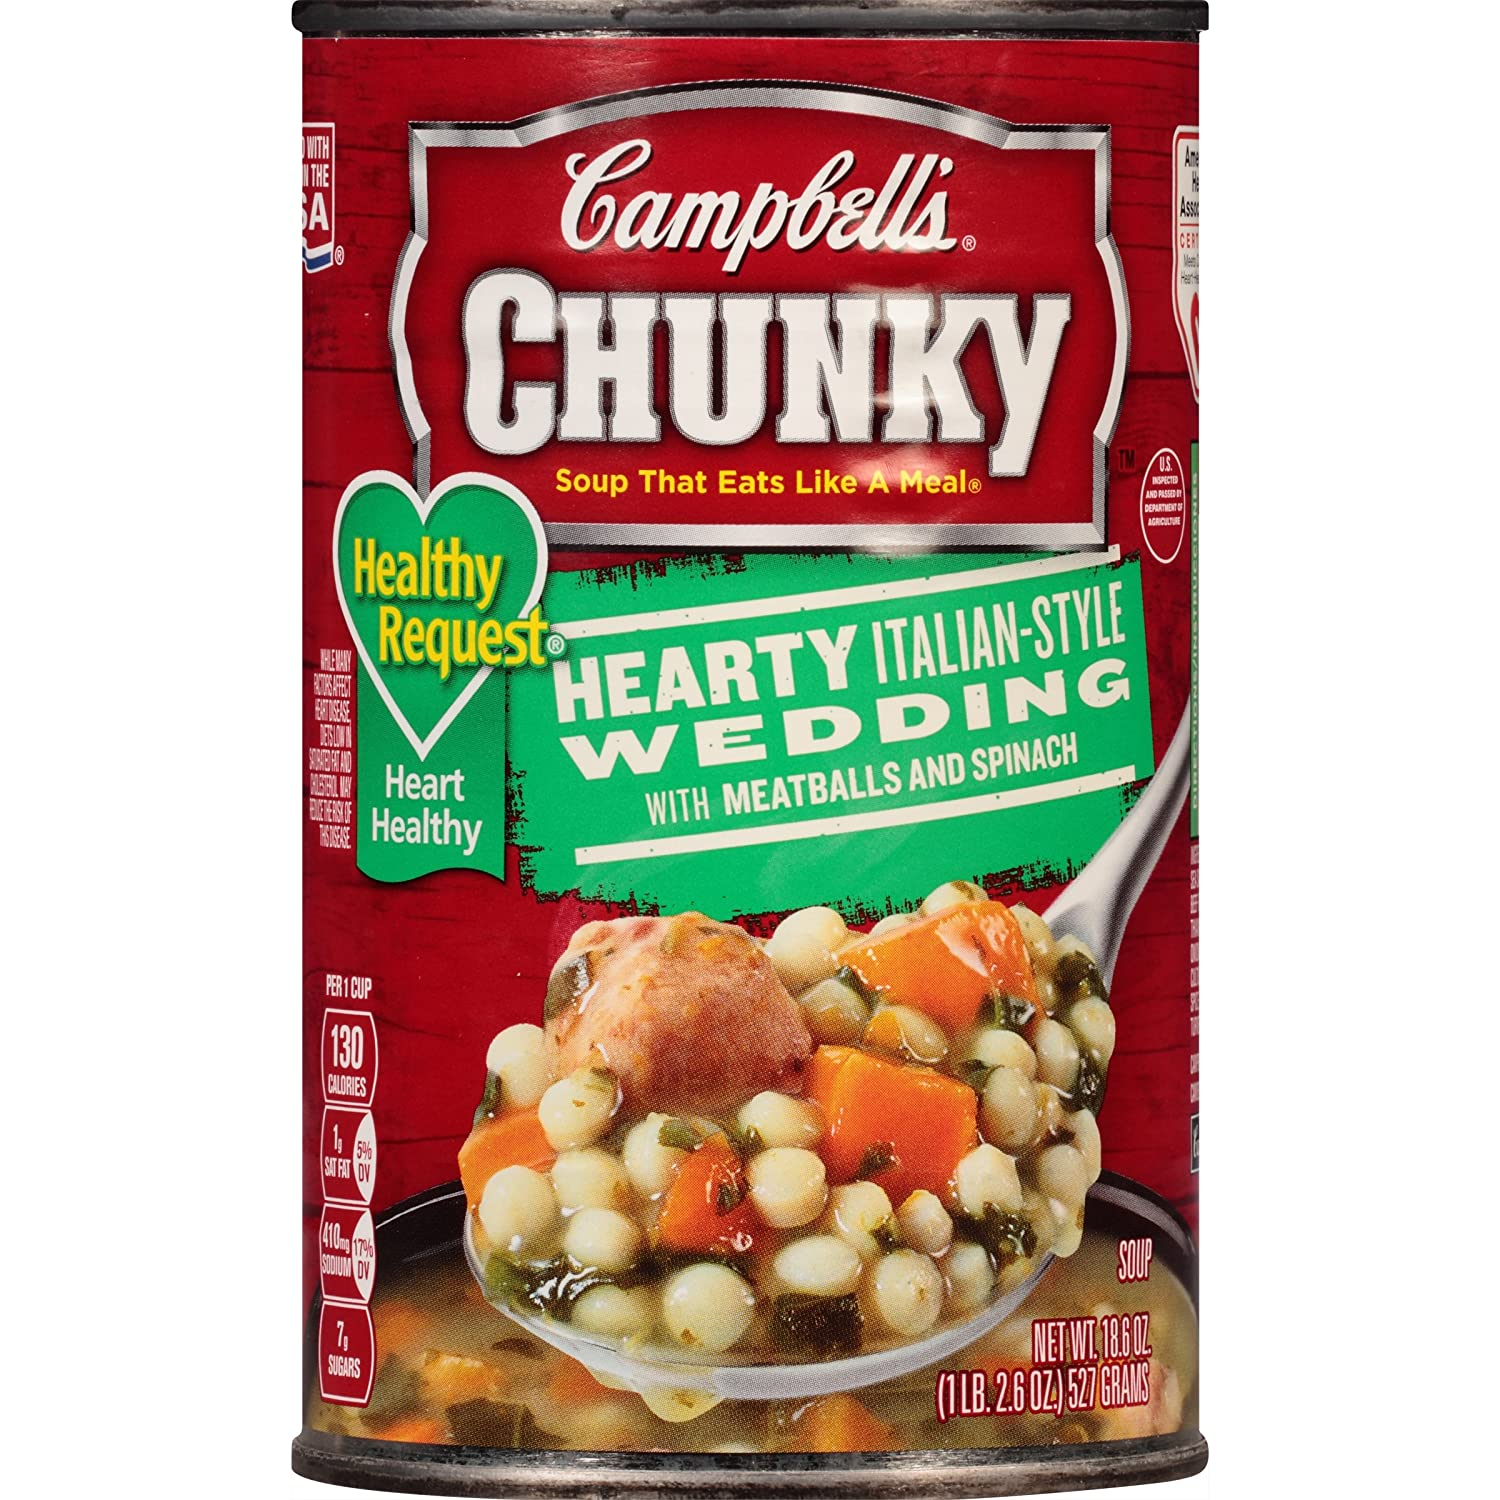 amazoncom campbells chunky healthy request soup hearty italian style wedding with meatballs and spinach 186 ounce pack of 12 packaged beef soups